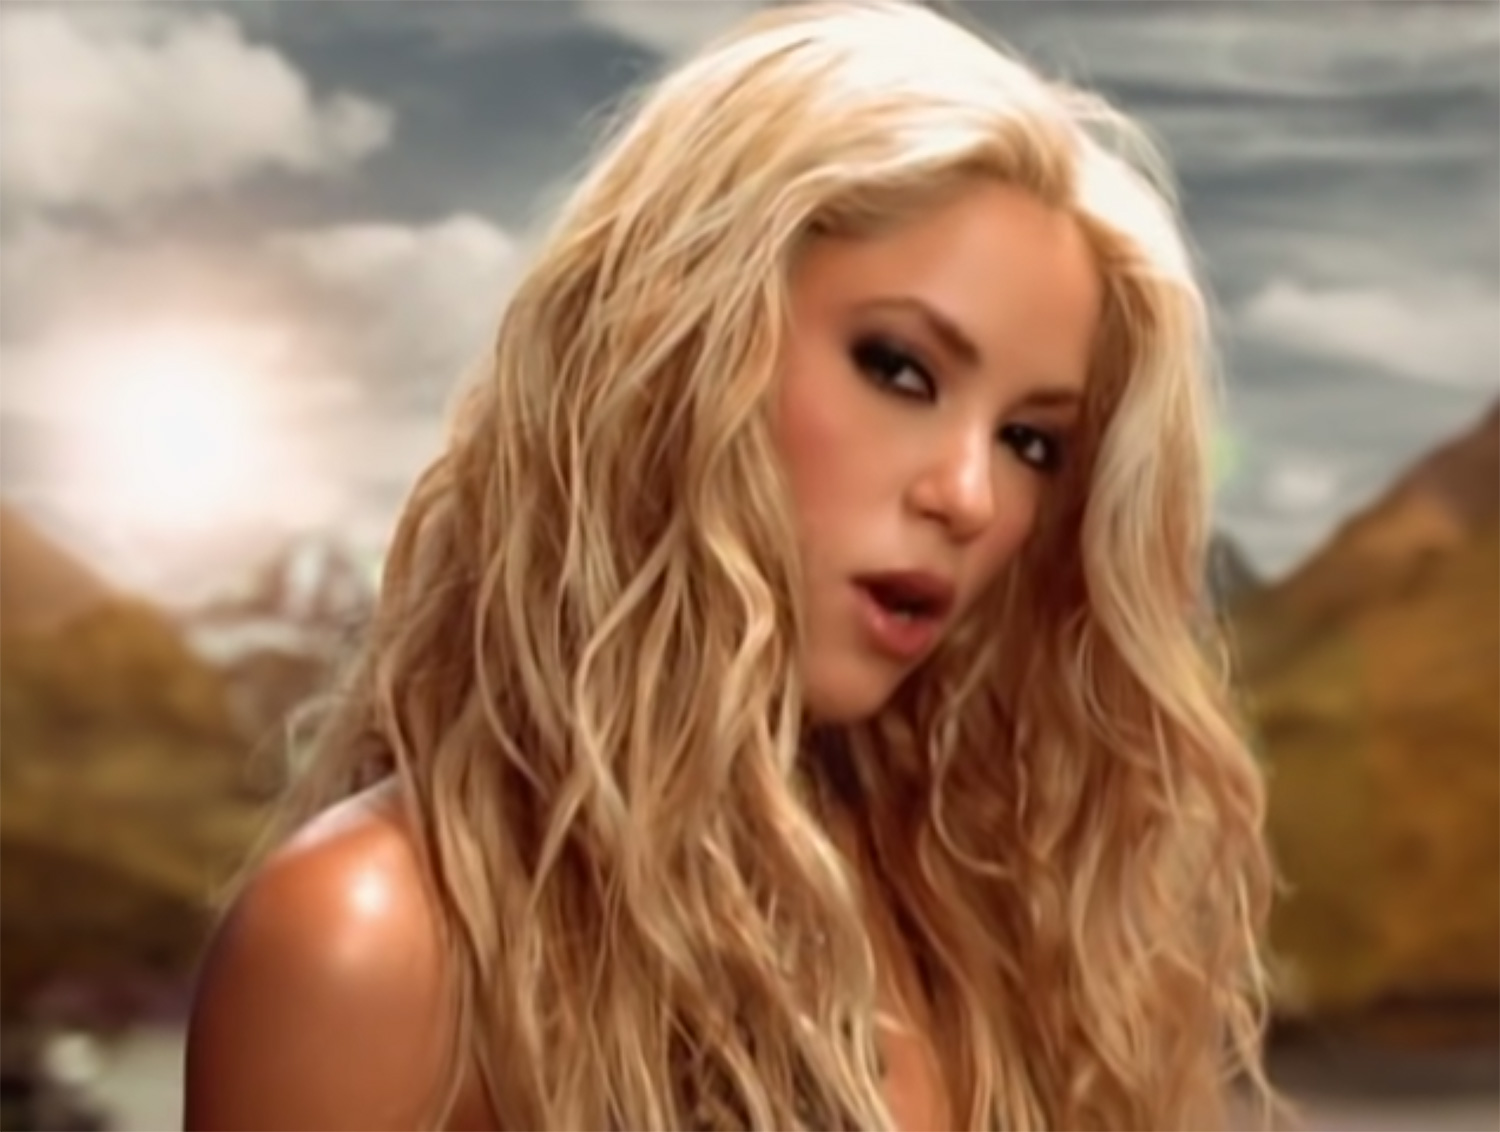 """Shakira's Hit """"Whenever, Wherever"""" Reaches #1 on iTunes Following Super Bowl Performance"""